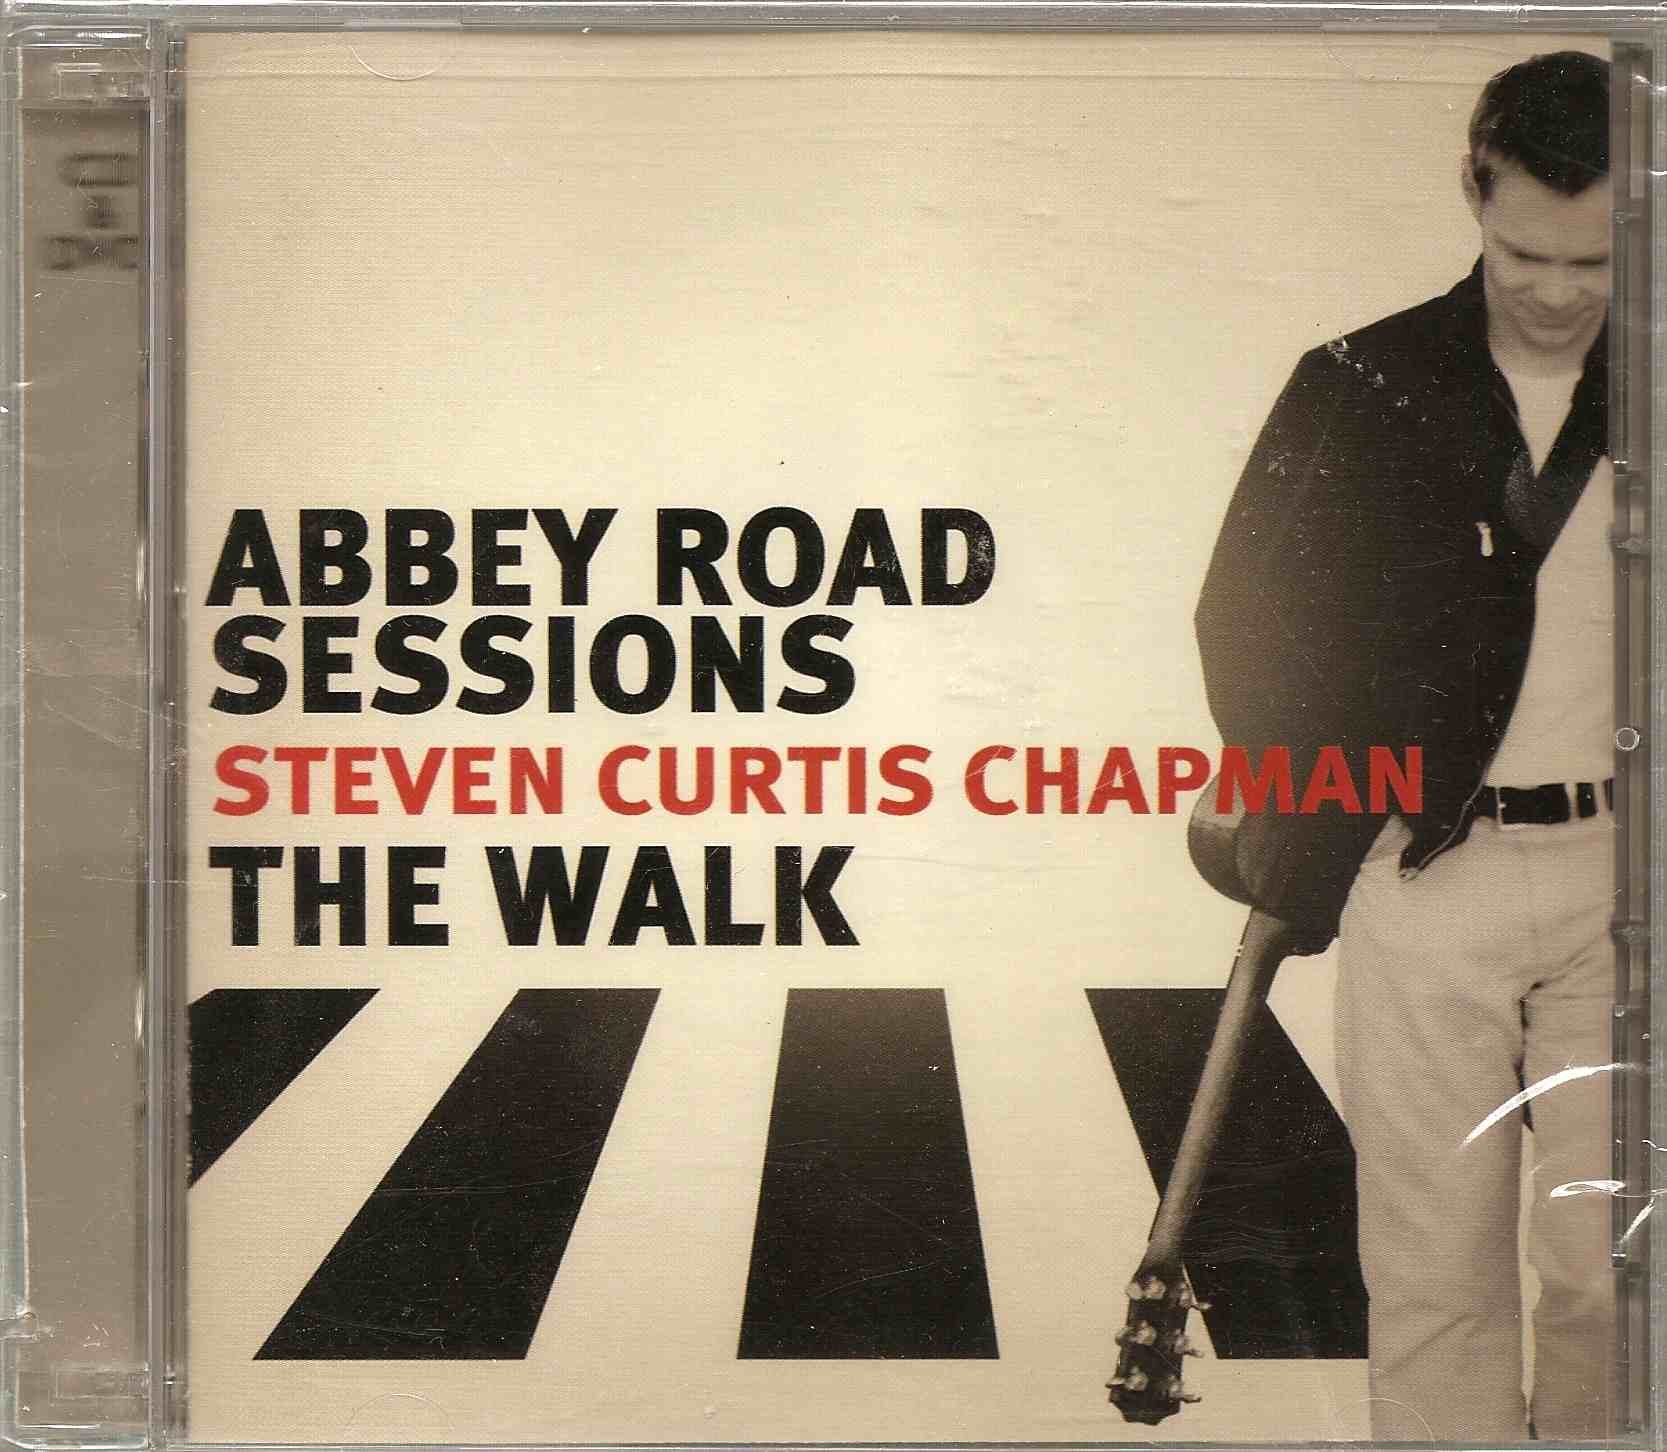 Abbey Road Sessions By Steven Curtis Chapman The Walk